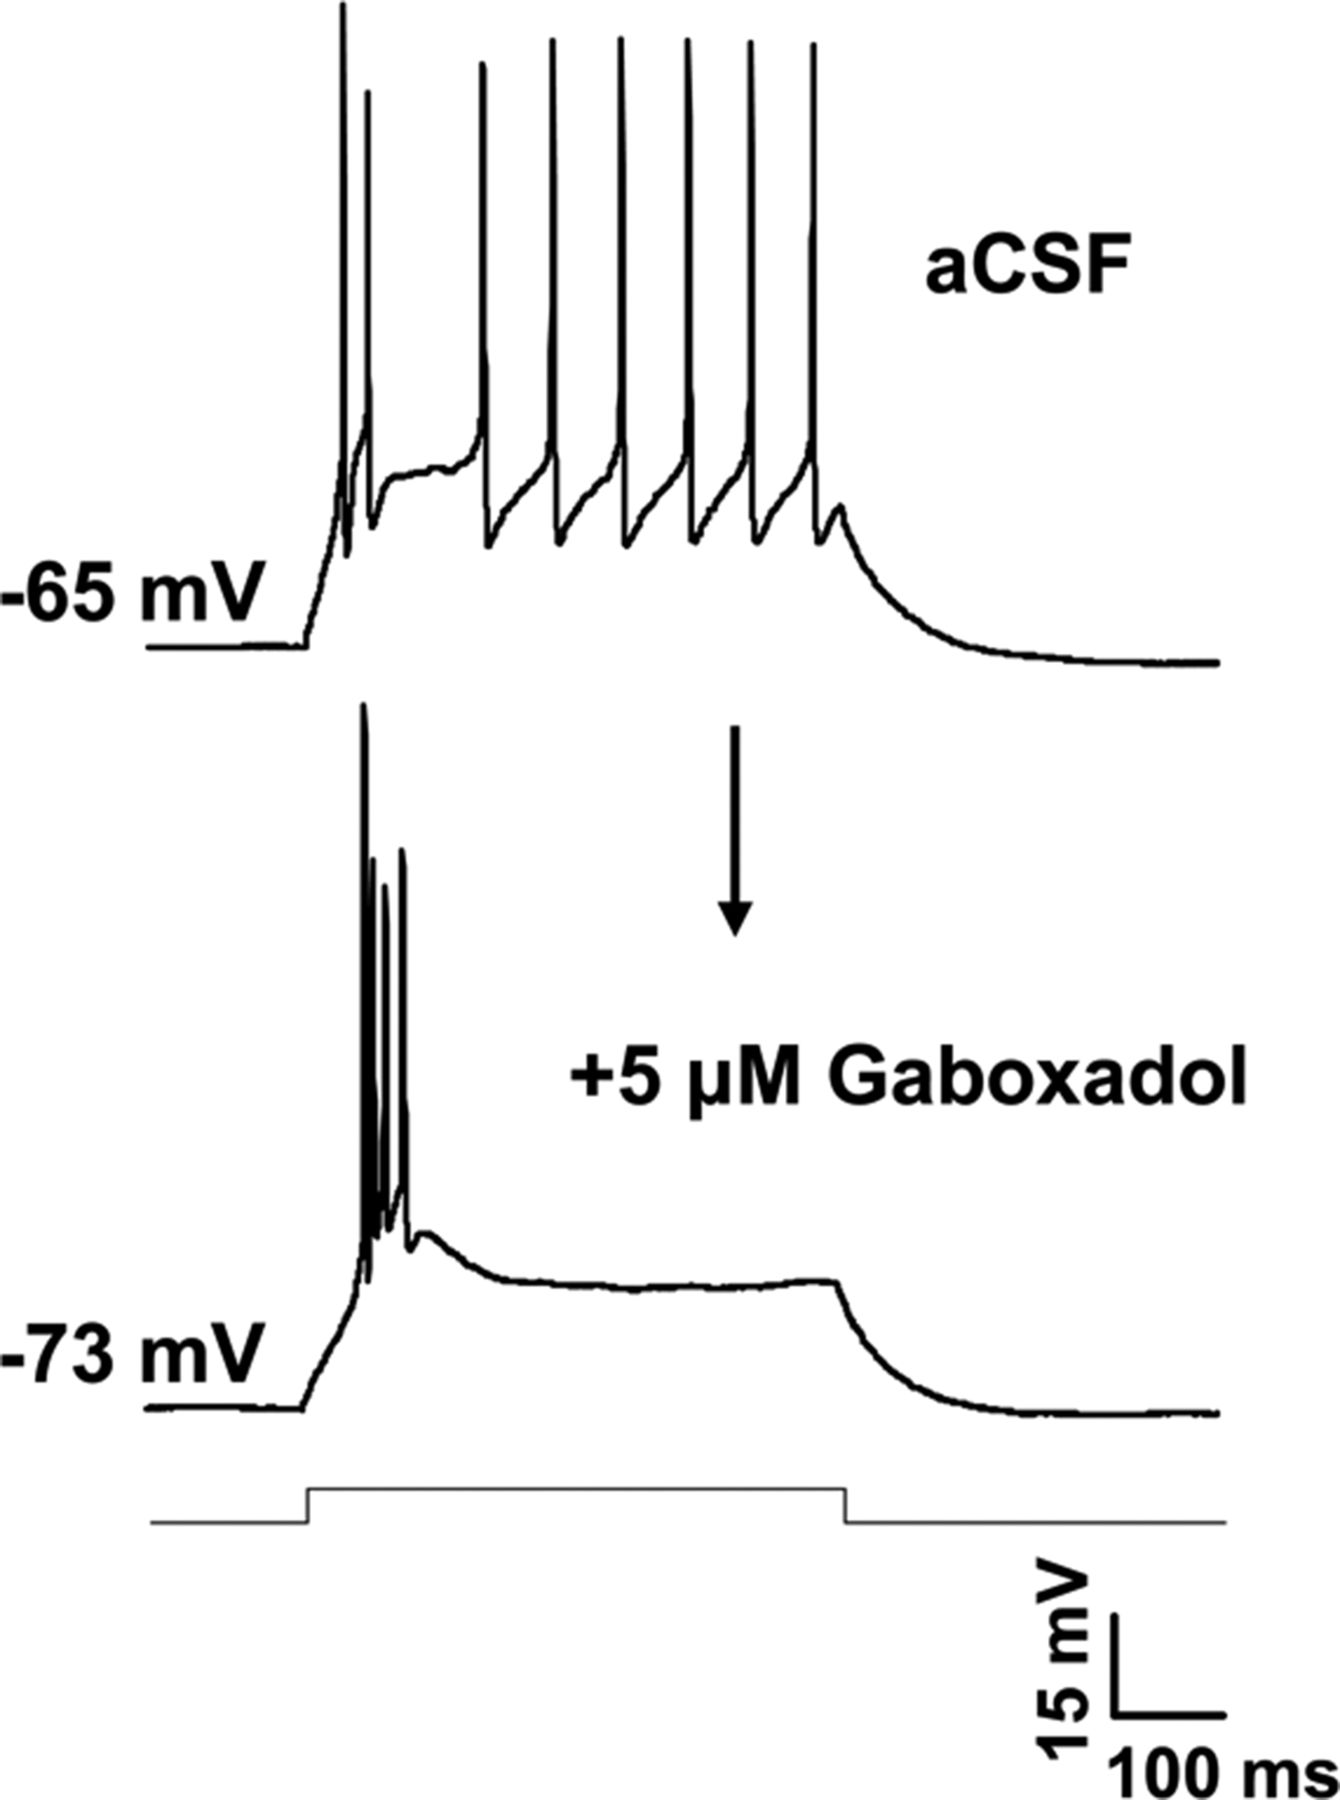 Enhanced Gabaa Mediated Tonic Inhibition In Auditory Thalamus Of Adcwithaticroprocessorcontrolledgain Basiccircuit Circuit Download Figure